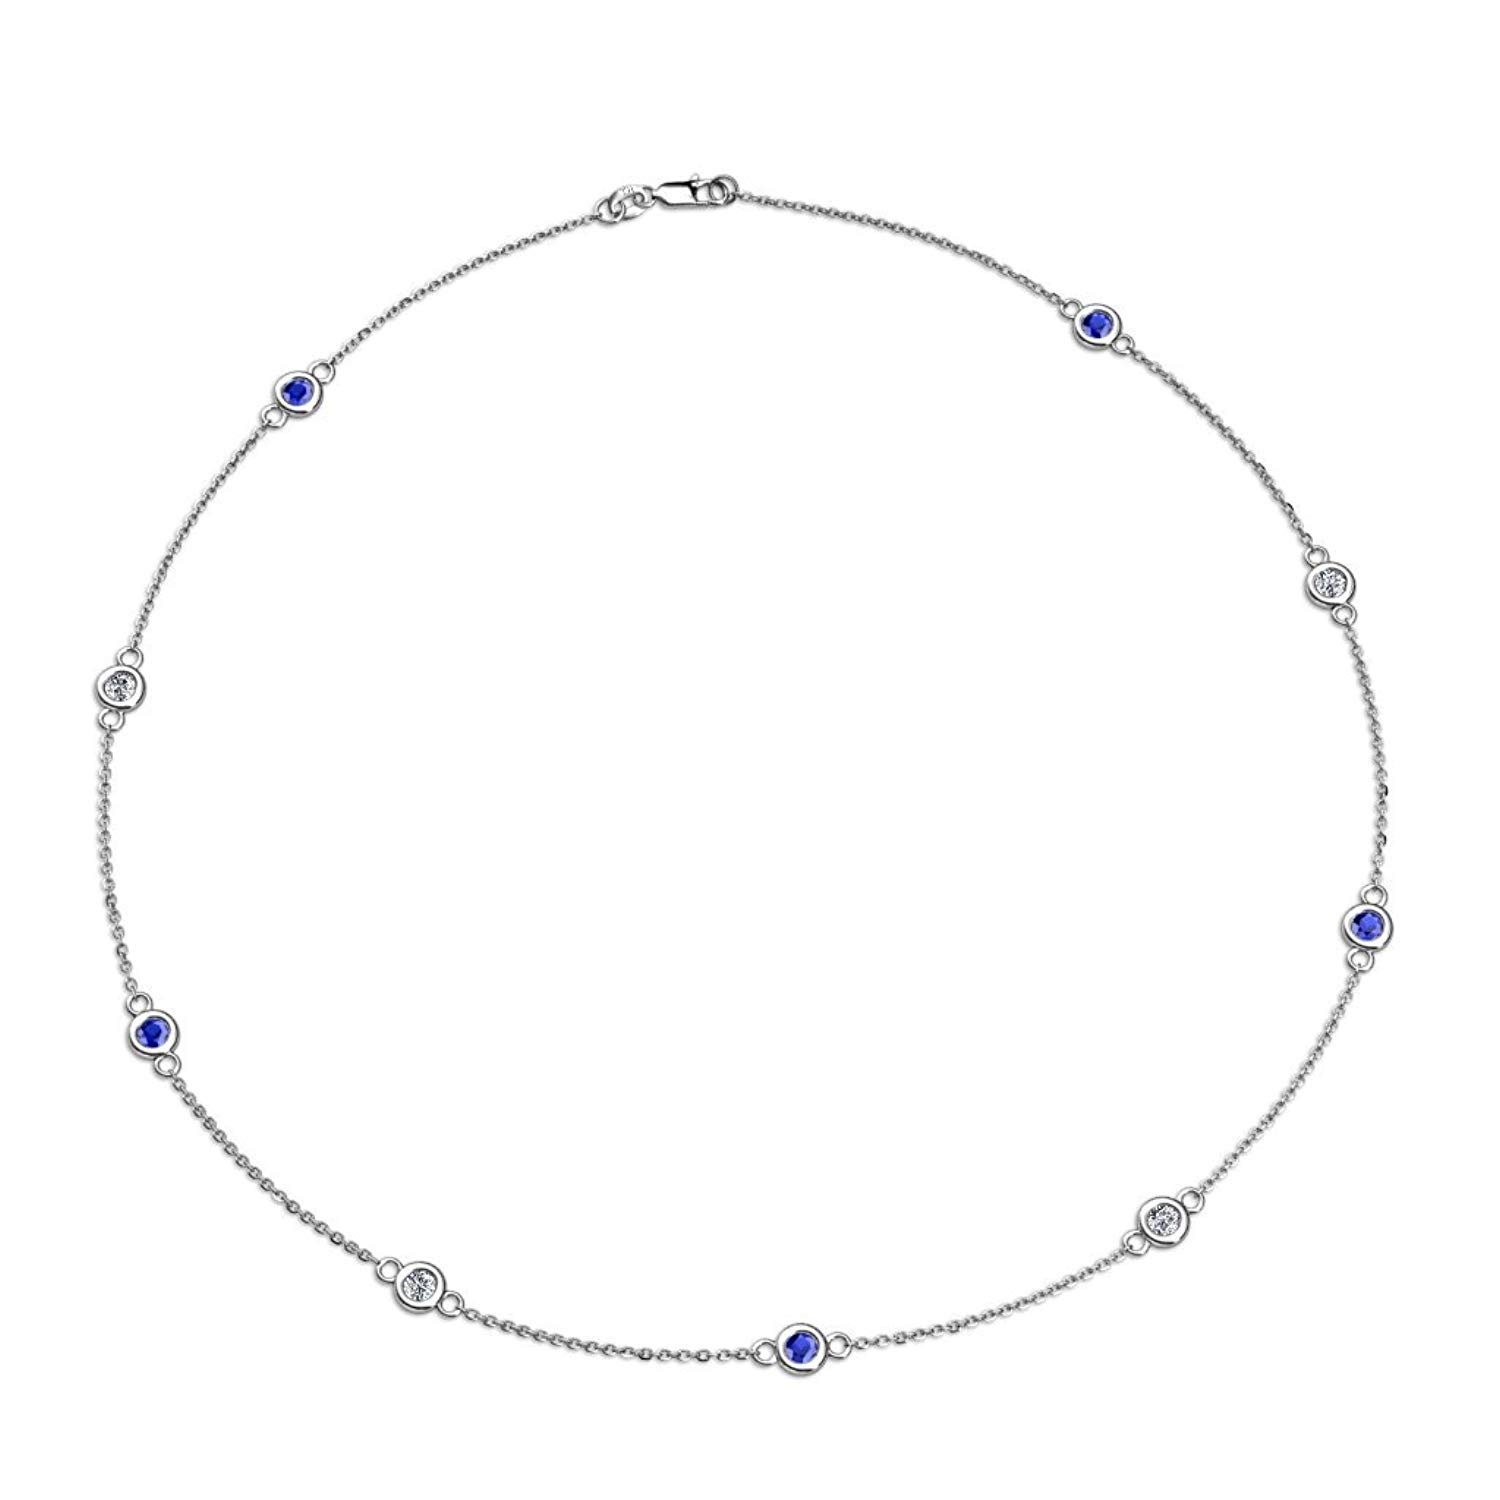 Blue Sapphire and Diamond (SI2-I1, G-H) 9 Station Necklace 1.39 cttw in 14K White Gold by TriJewels